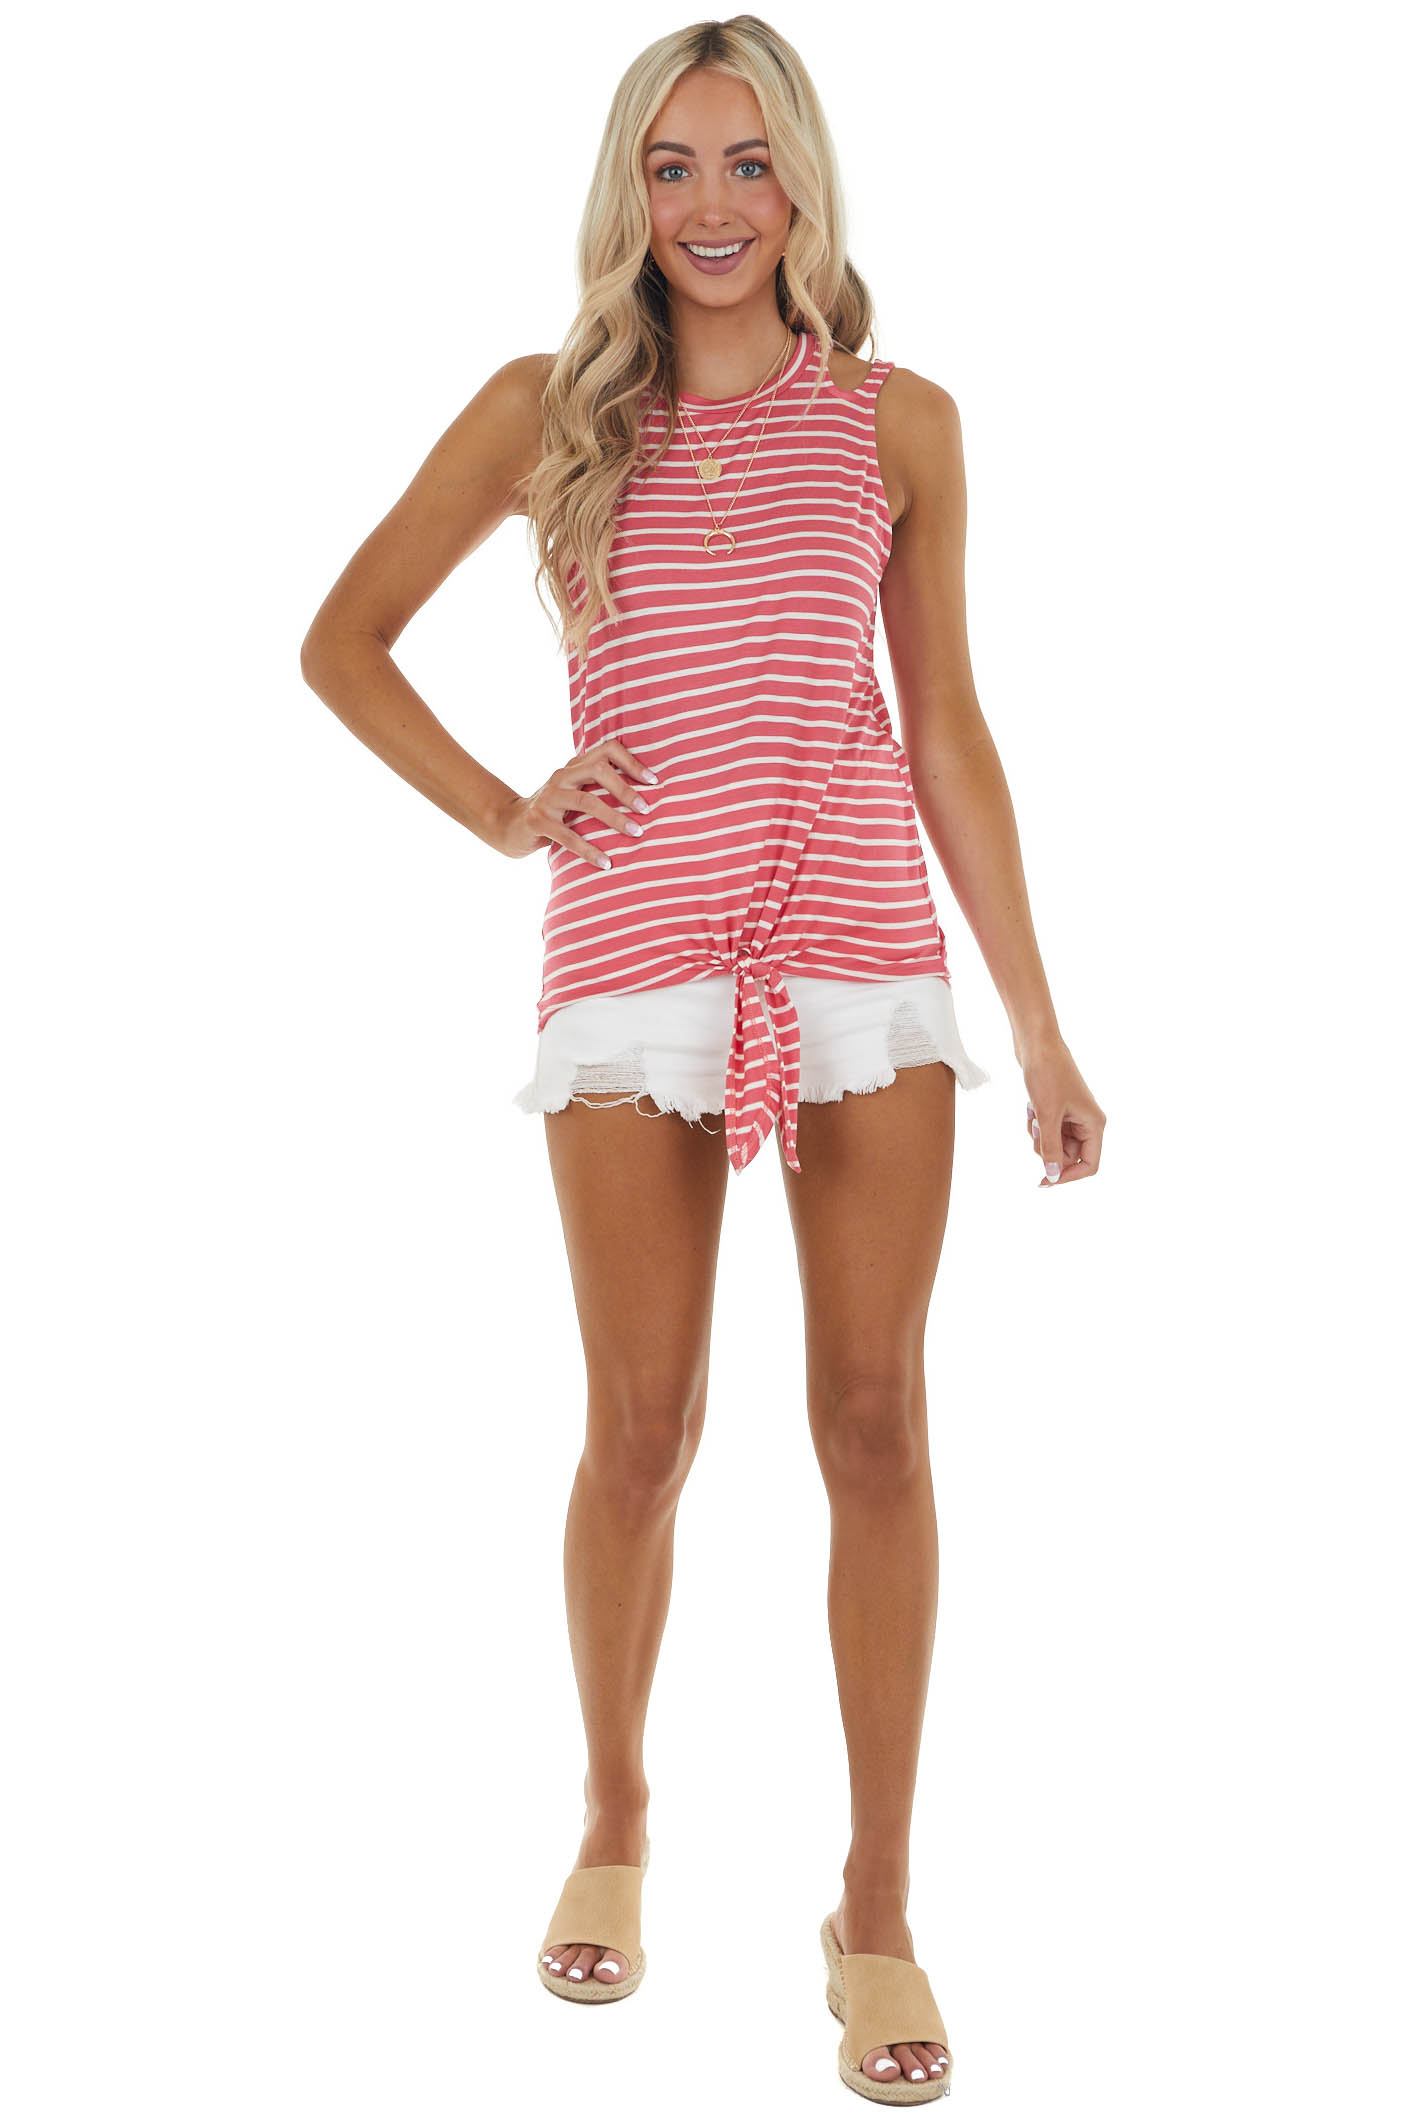 Watermelon Striped Knit Tank Top with Shoulder Cut Outs